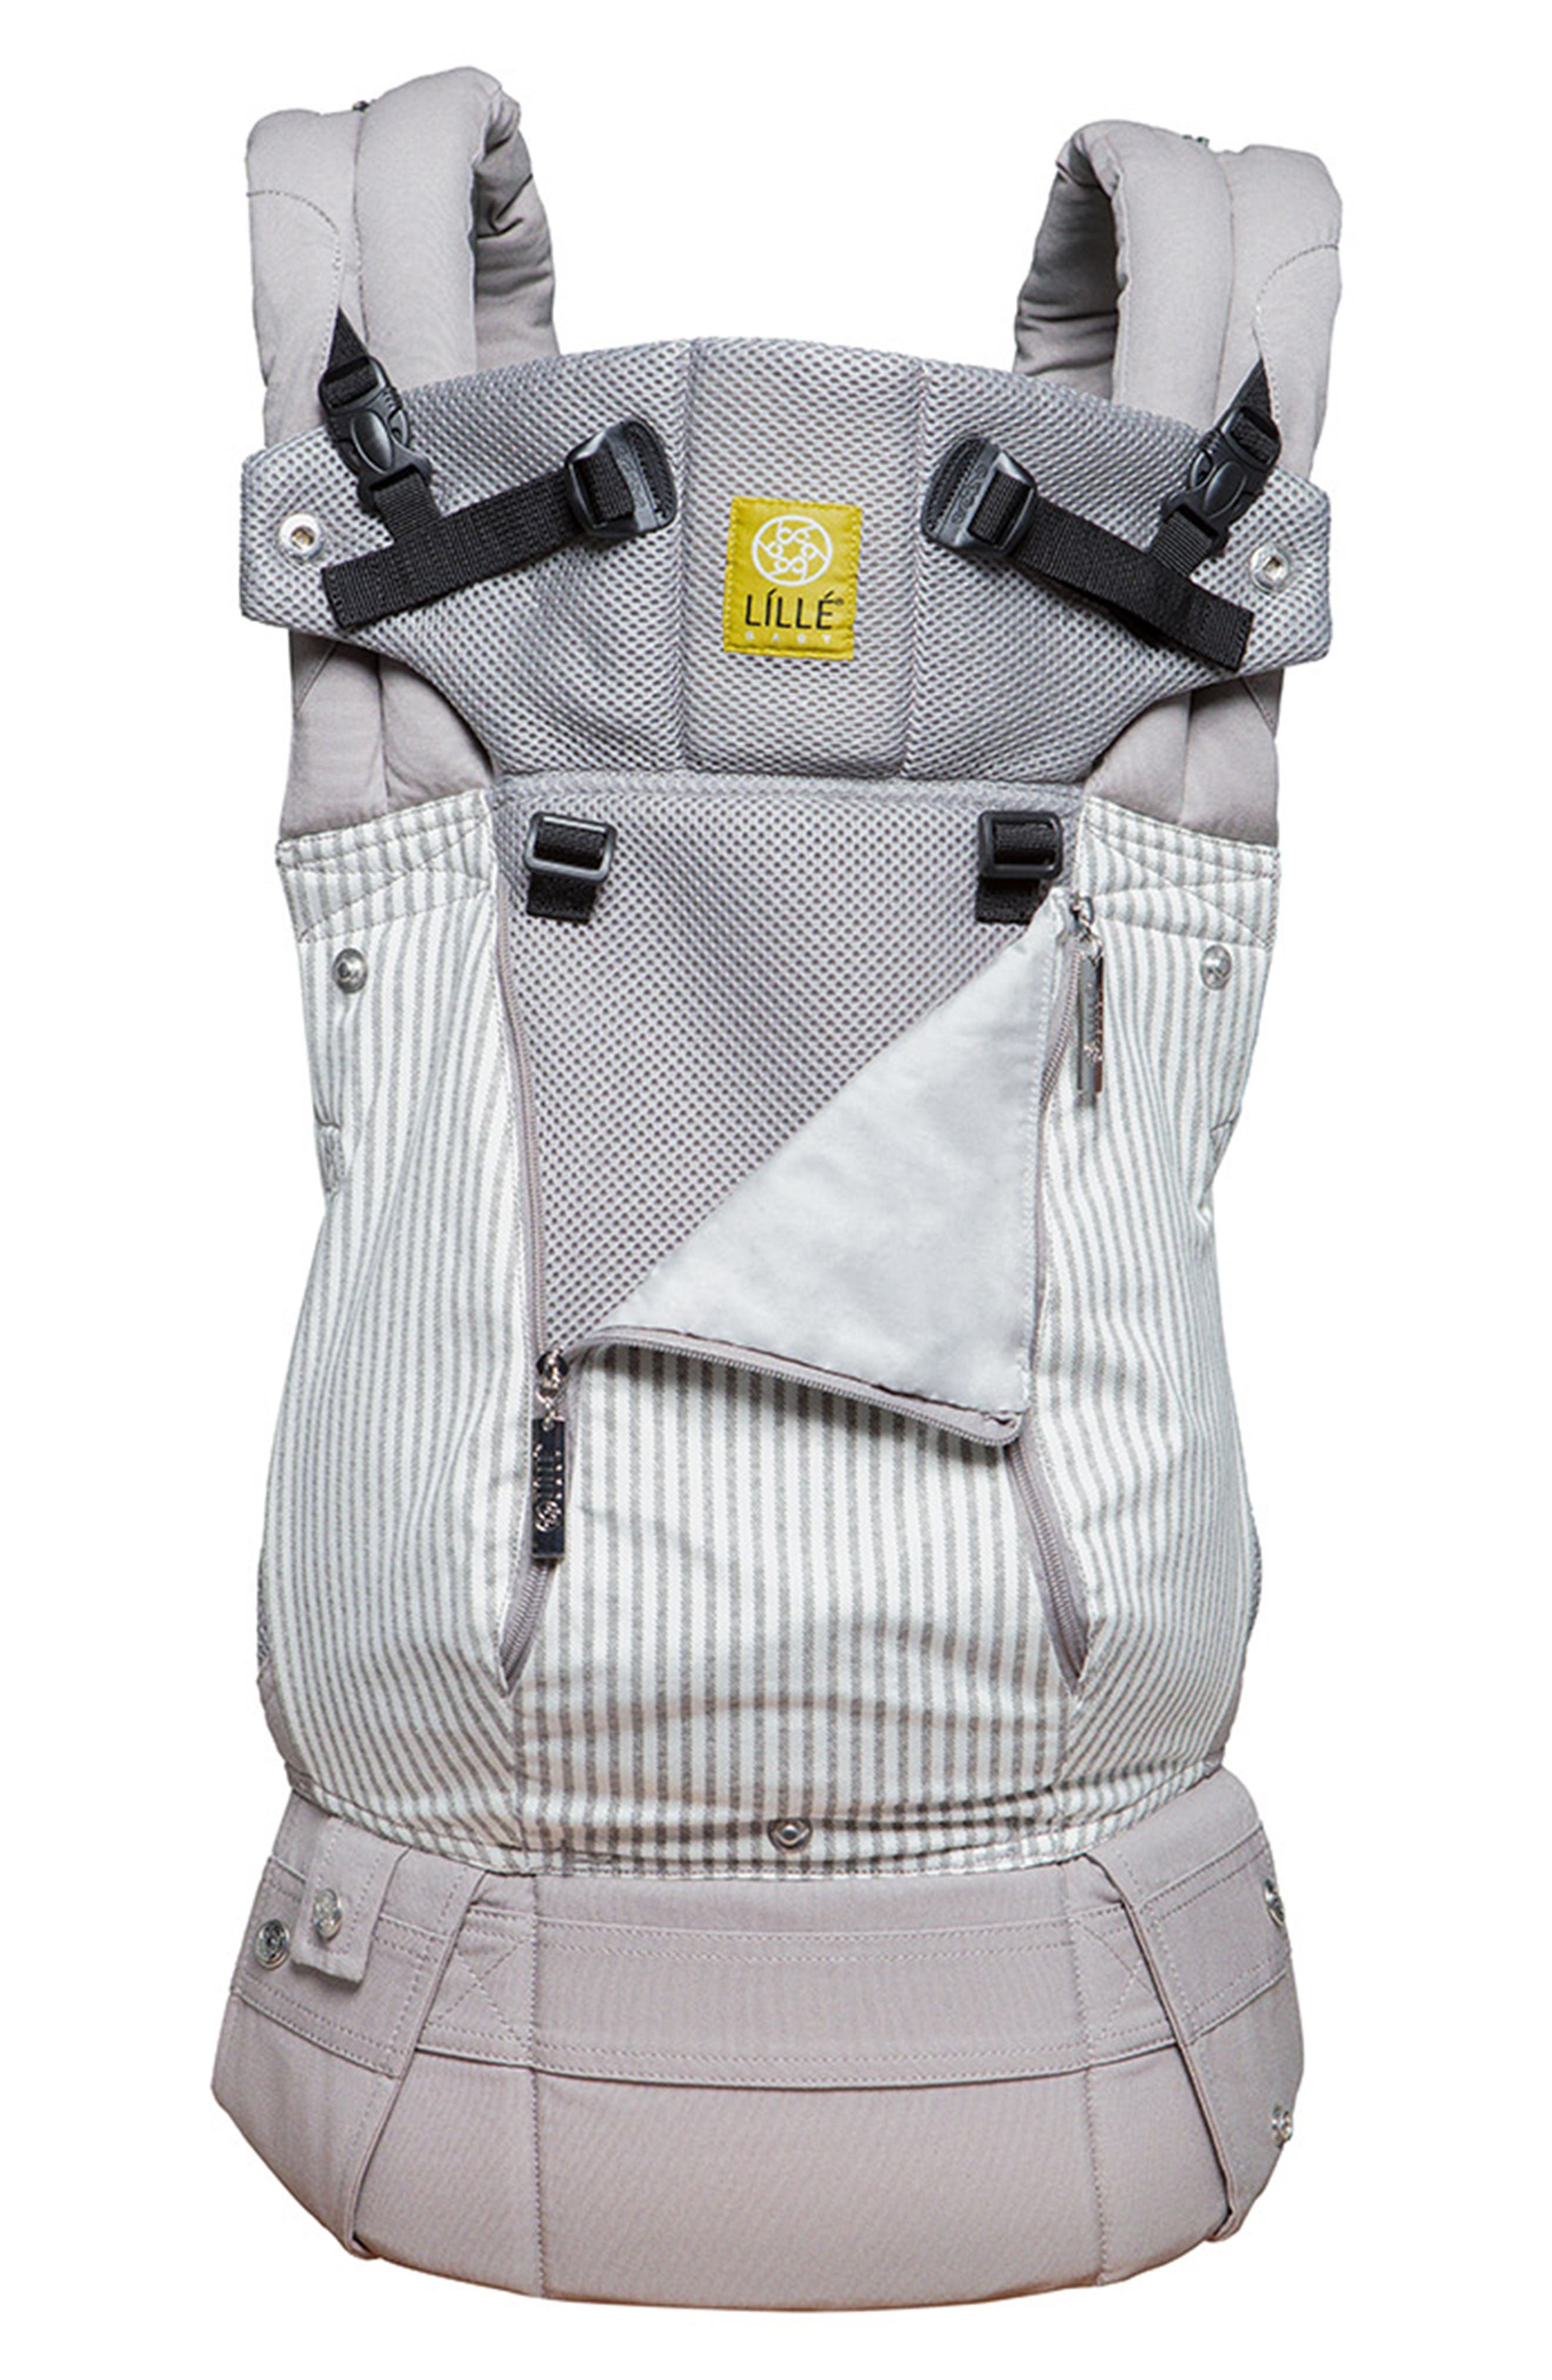 LILLEBABY All Seasons - Silver Lining Baby Carrier, Main, color, SILVER LINING